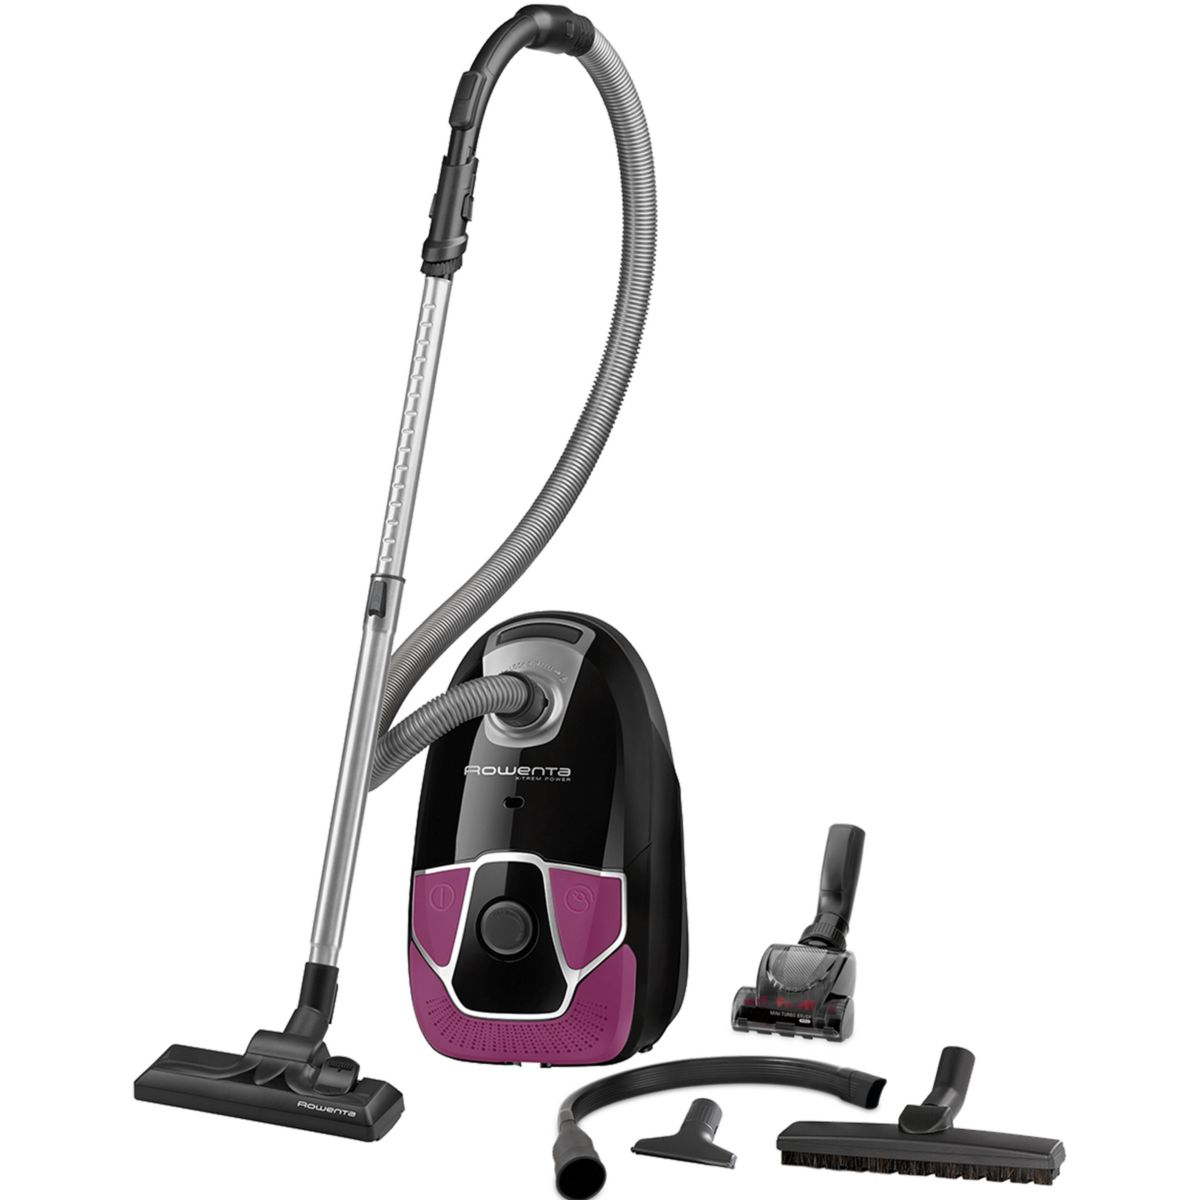 Aspirateur avec sac ROWENTA RO6879EA X-trem power 3A+ (photo)